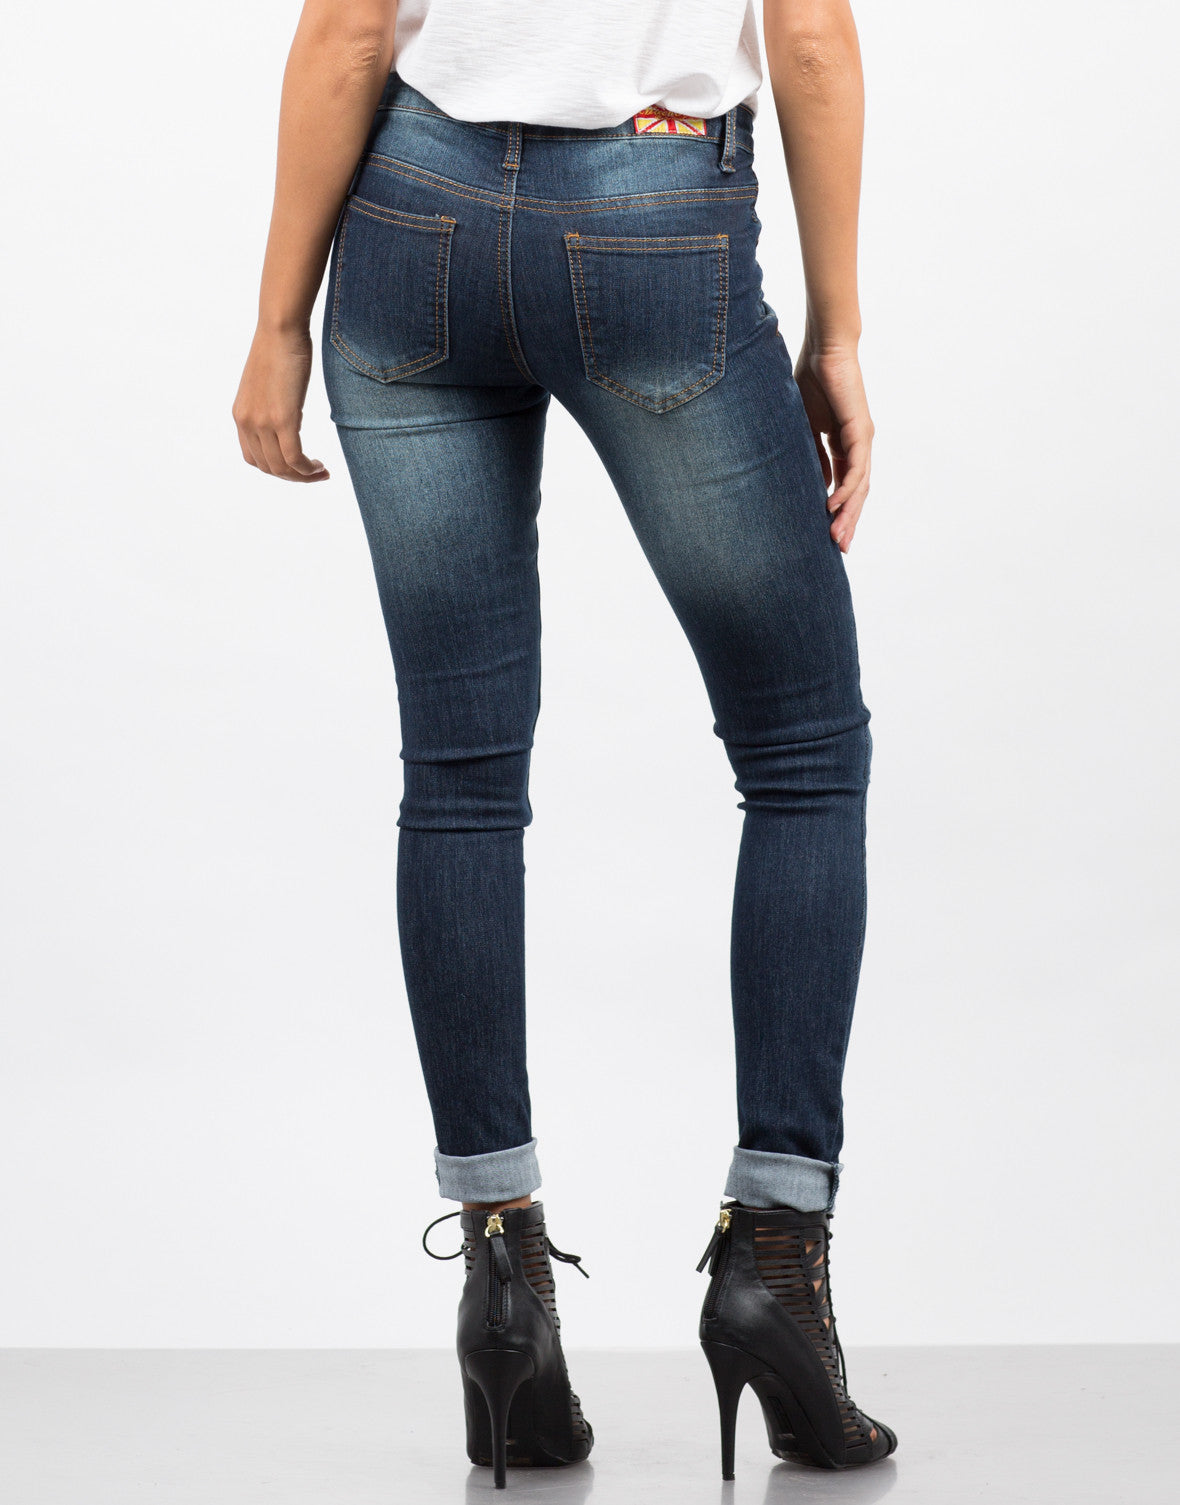 Back View of Lazer Cut Denim Skinny Jeans